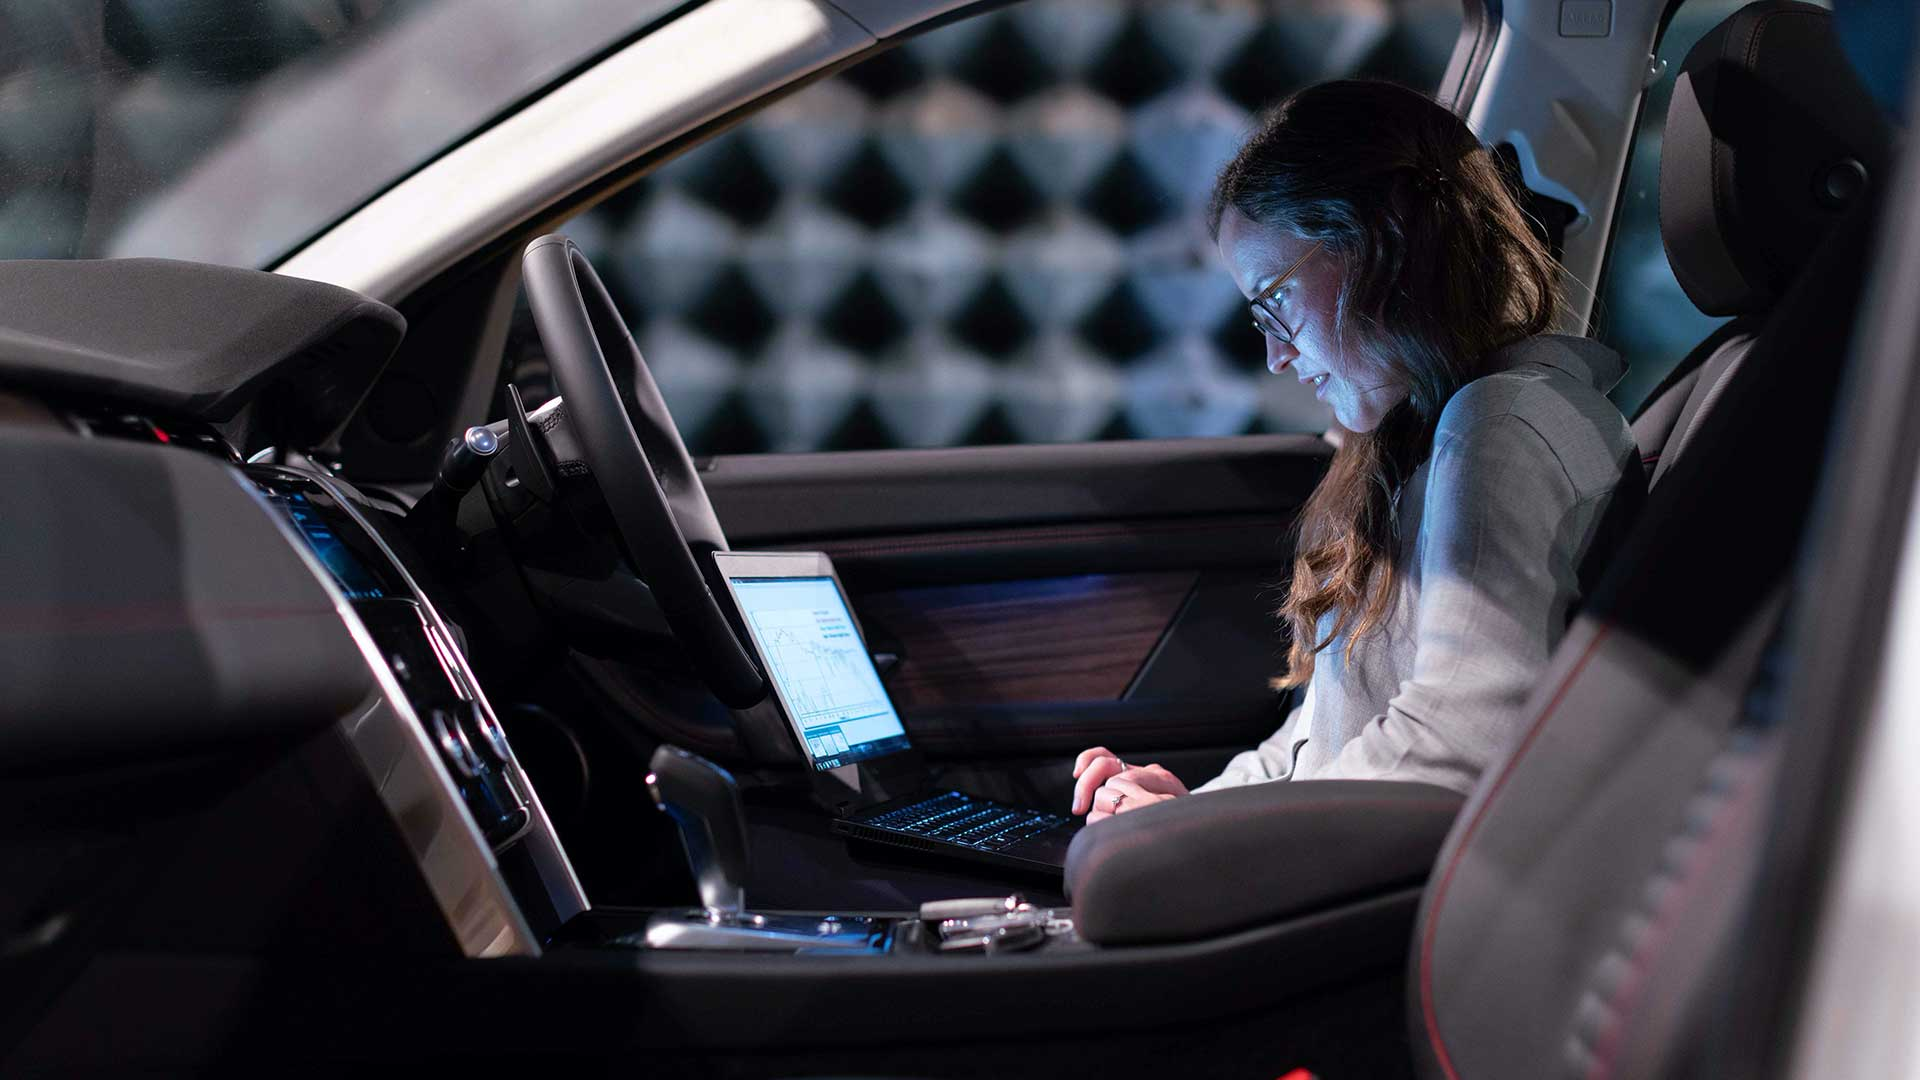 image relates to your laptop and devices in the car